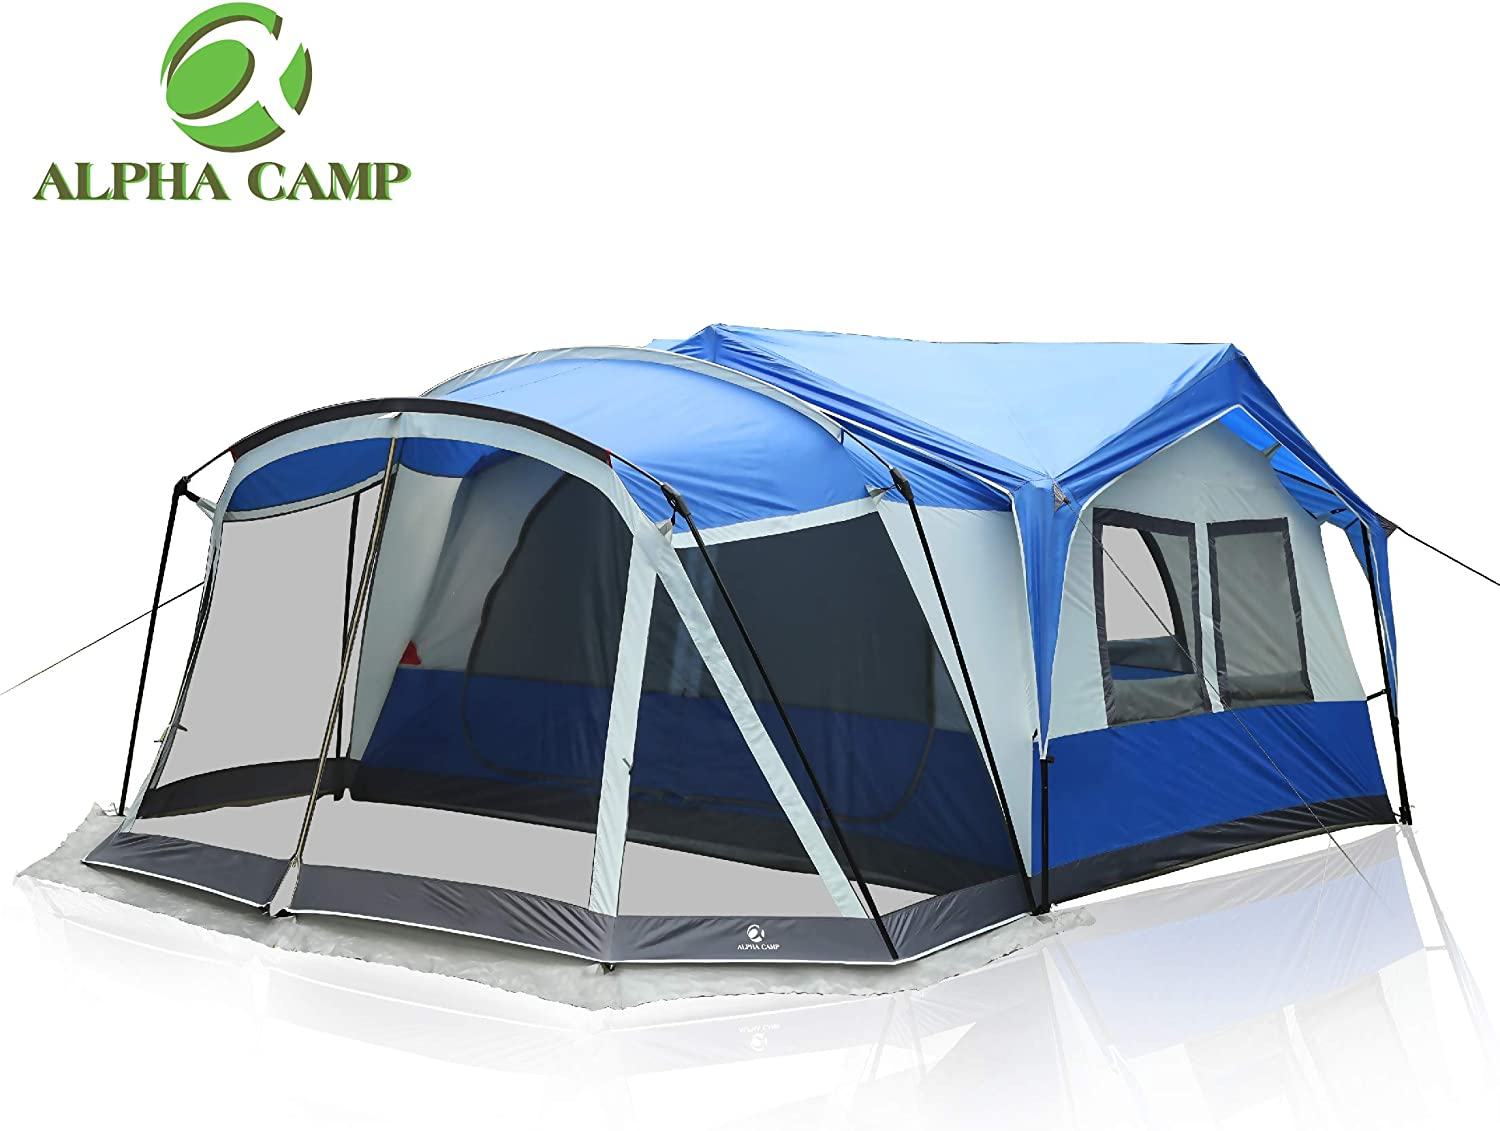 ALPHA CAMP 10-12 Person Family Camping Tent with Screen Room Cabin Tent Design – 19 x 12